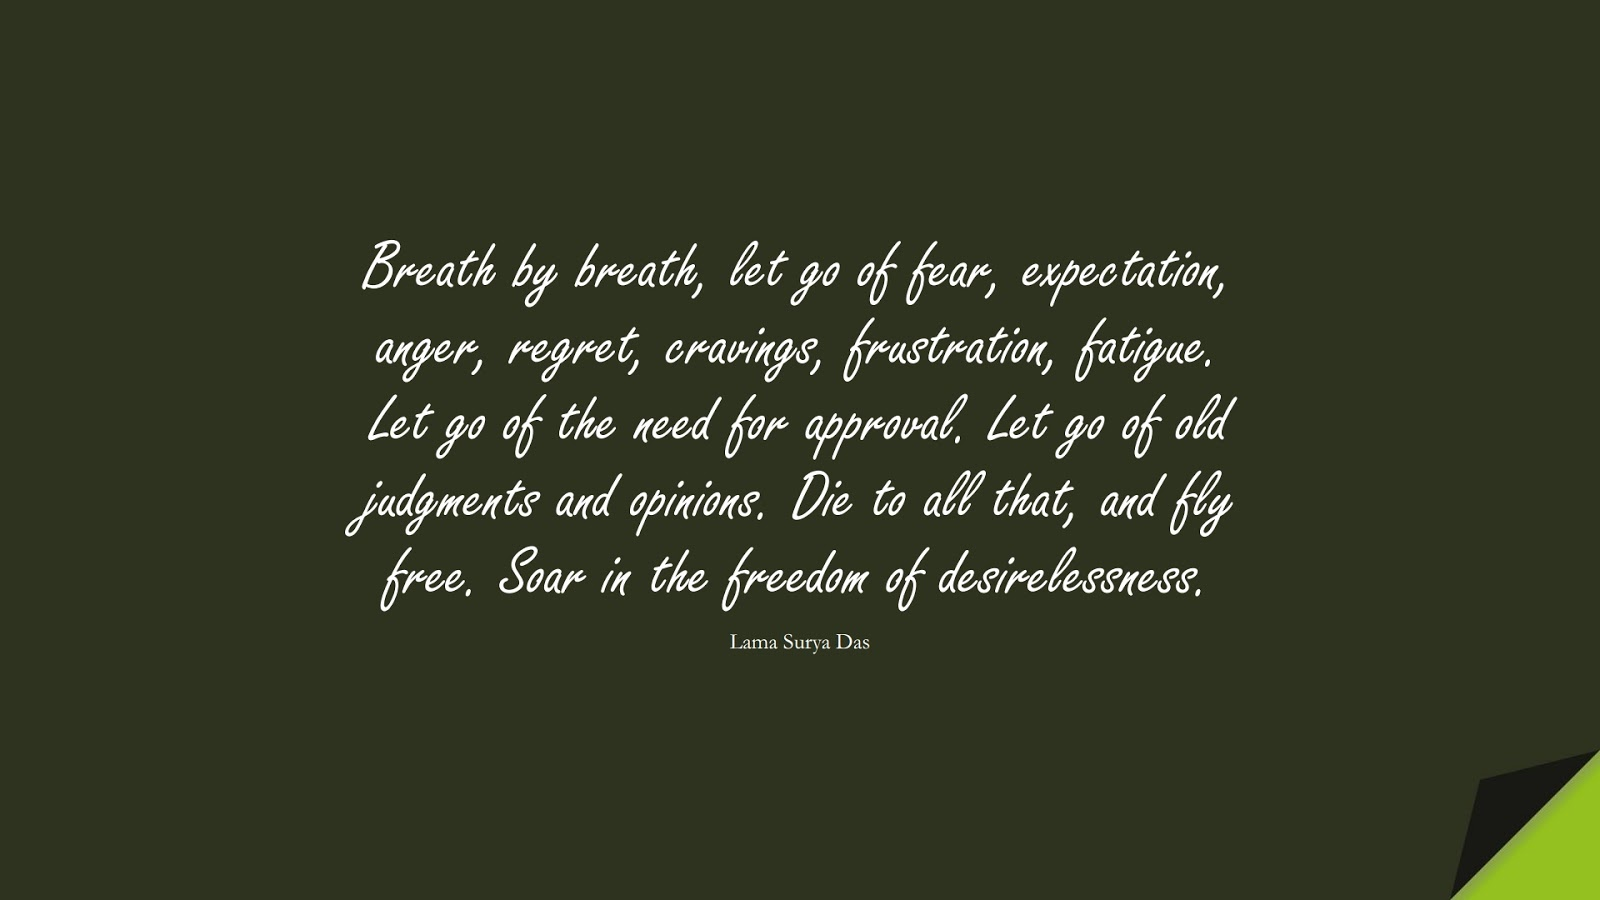 Breath by breath, let go of fear, expectation, anger, regret, cravings, frustration, fatigue. Let go of the need for approval. Let go of old judgments and opinions. Die to all that, and fly free. Soar in the freedom of desirelessness. (Lama Surya Das);  #AnxietyQuotes